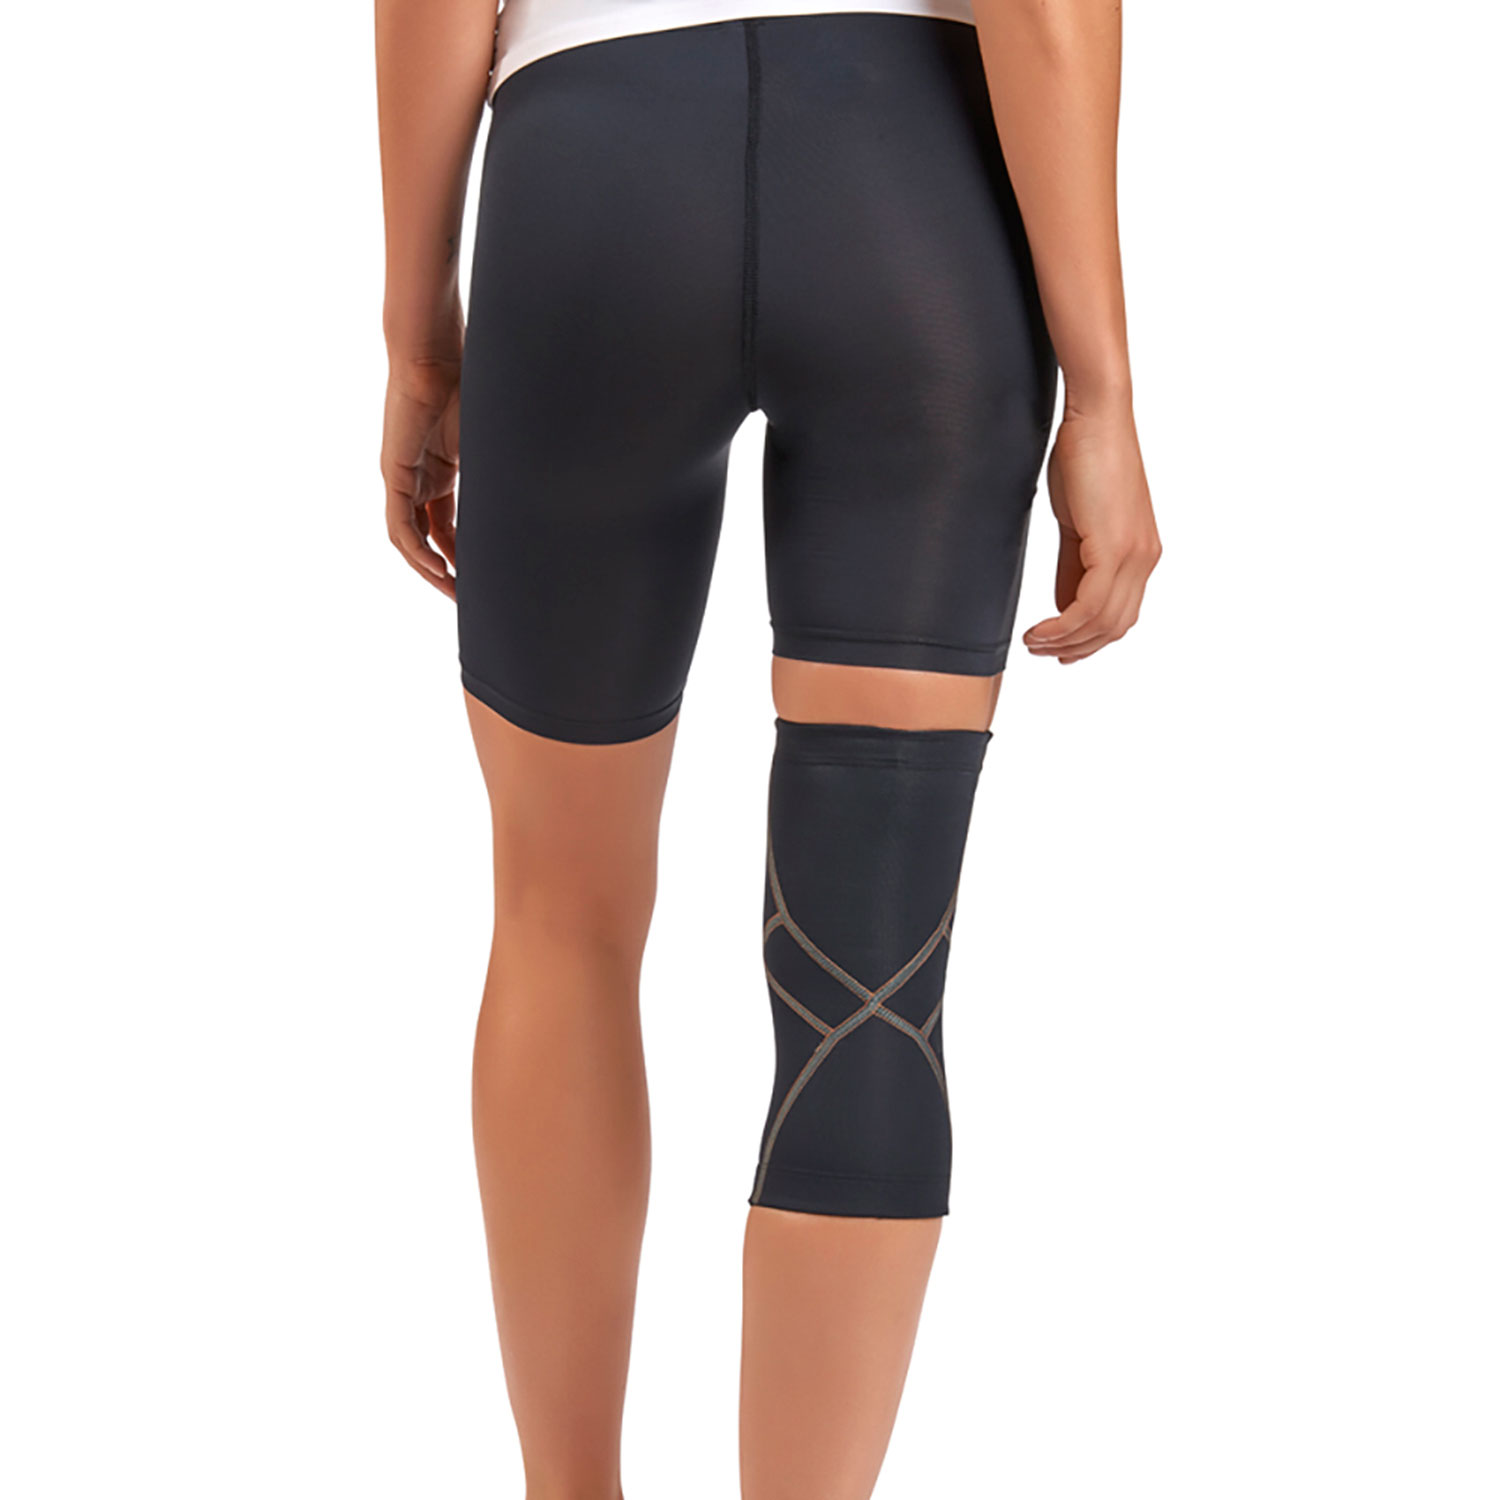 Tommie Copper Womens Performance Compression Knee Sleeve